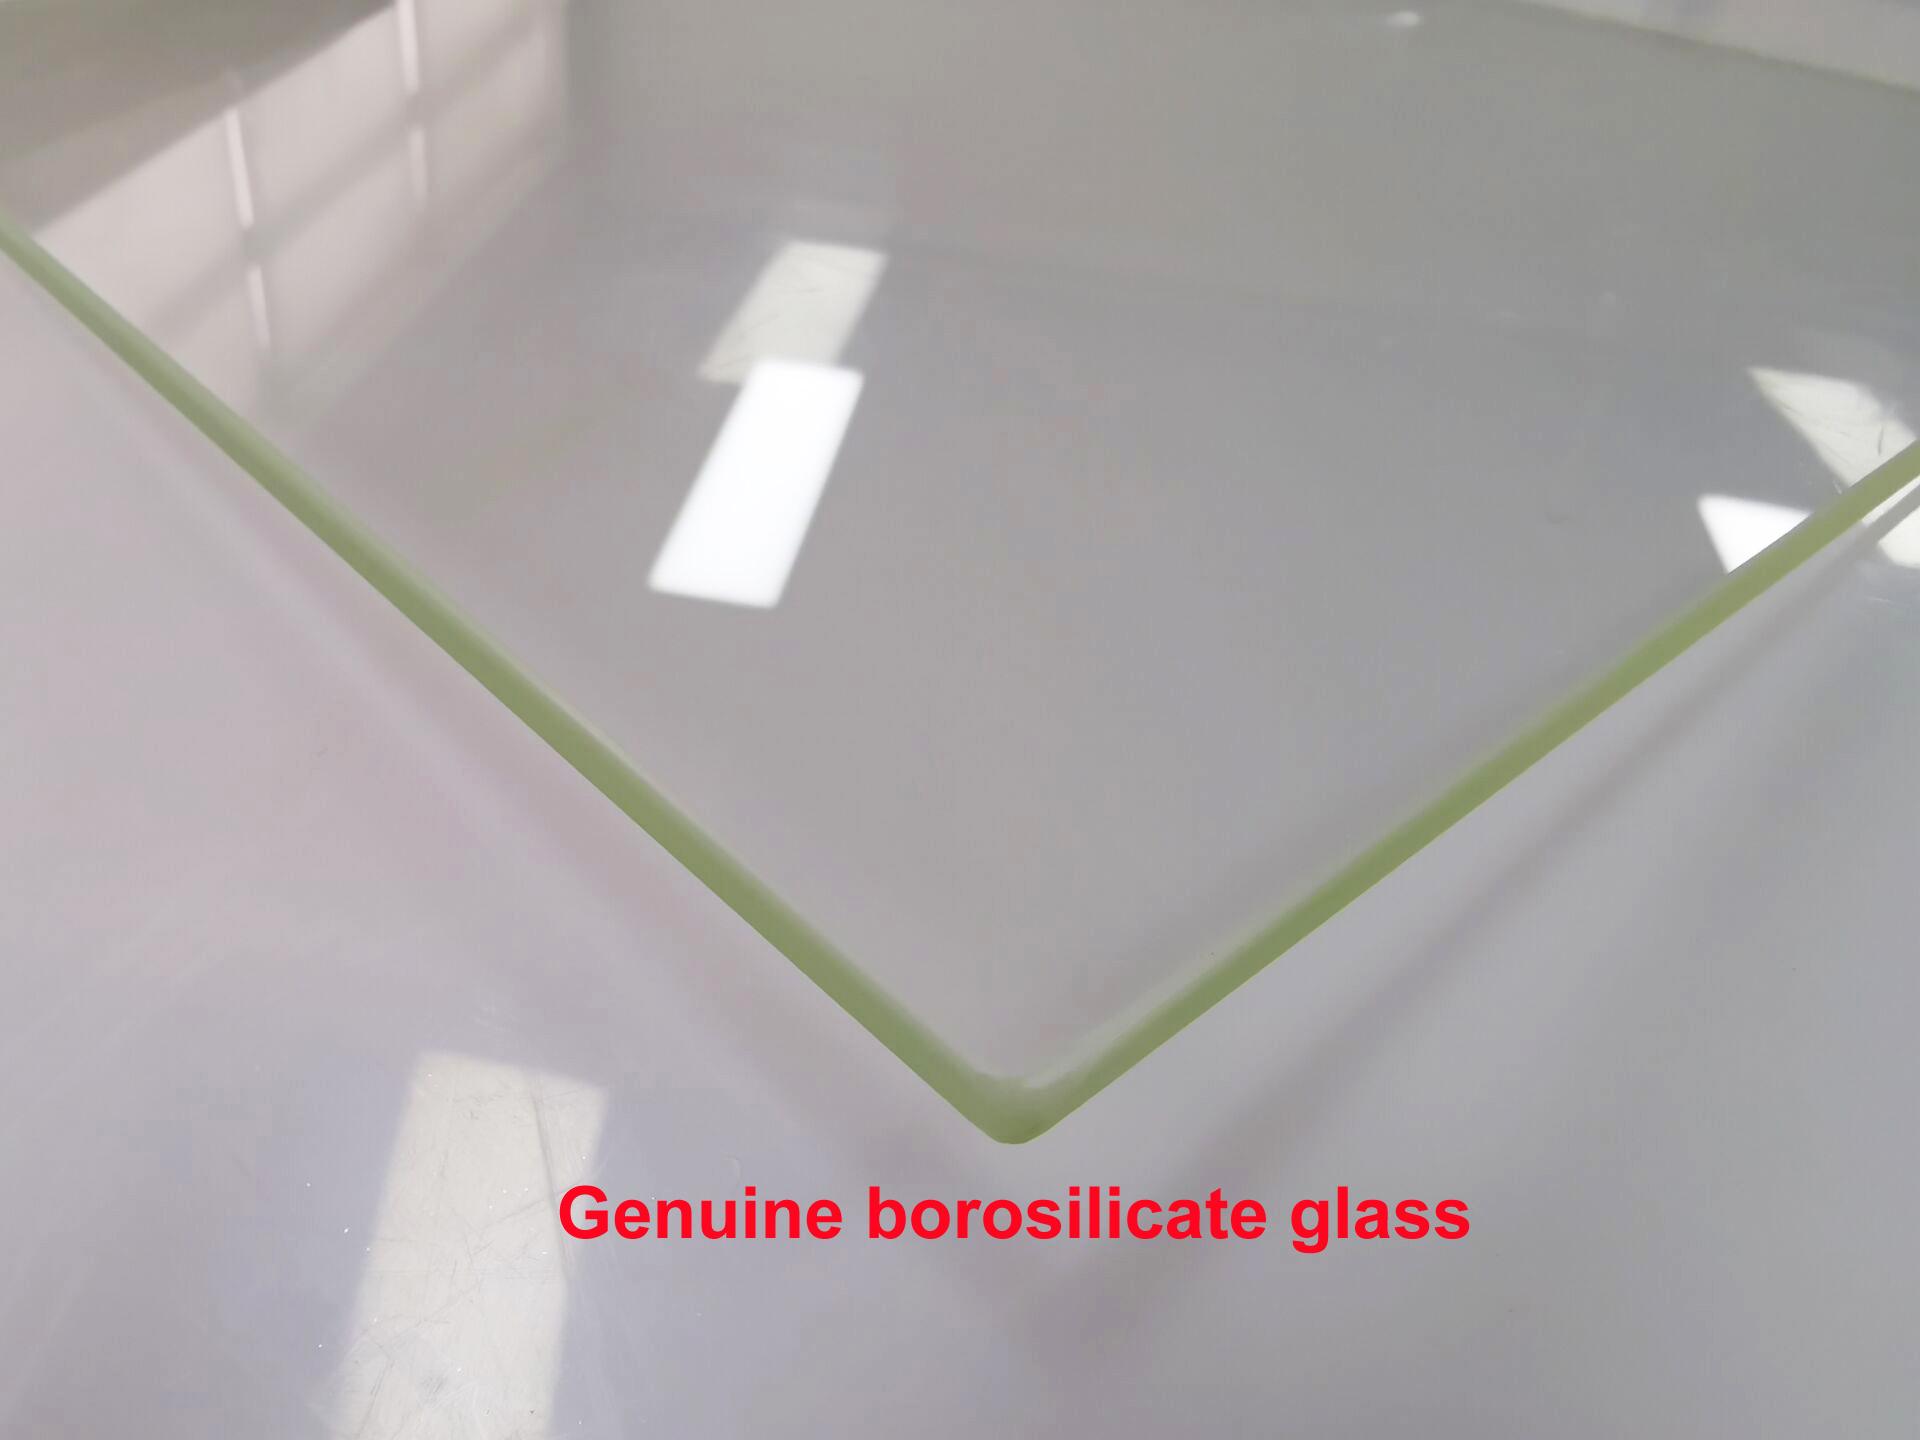 3D Printer Borosilicate Glass Build Plate For MK2 Makerbot Creality  Flashforge Wanhao CTC ANET Prusa Tevo Prusa I3 Heatbed